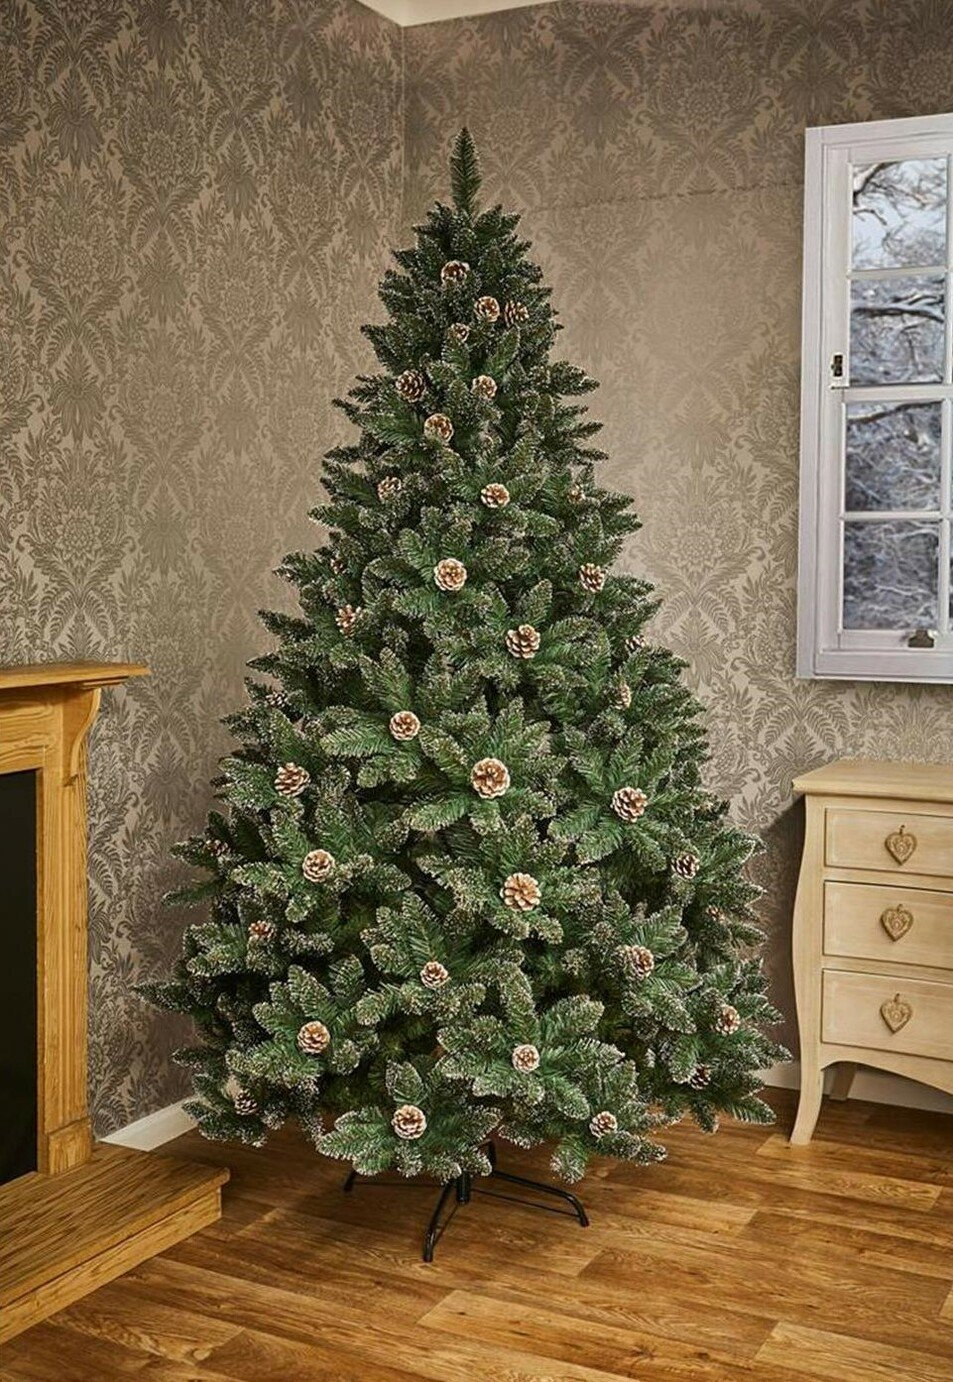 premier-decorations-7ft-snow-tipped-mountain-pinetree-green